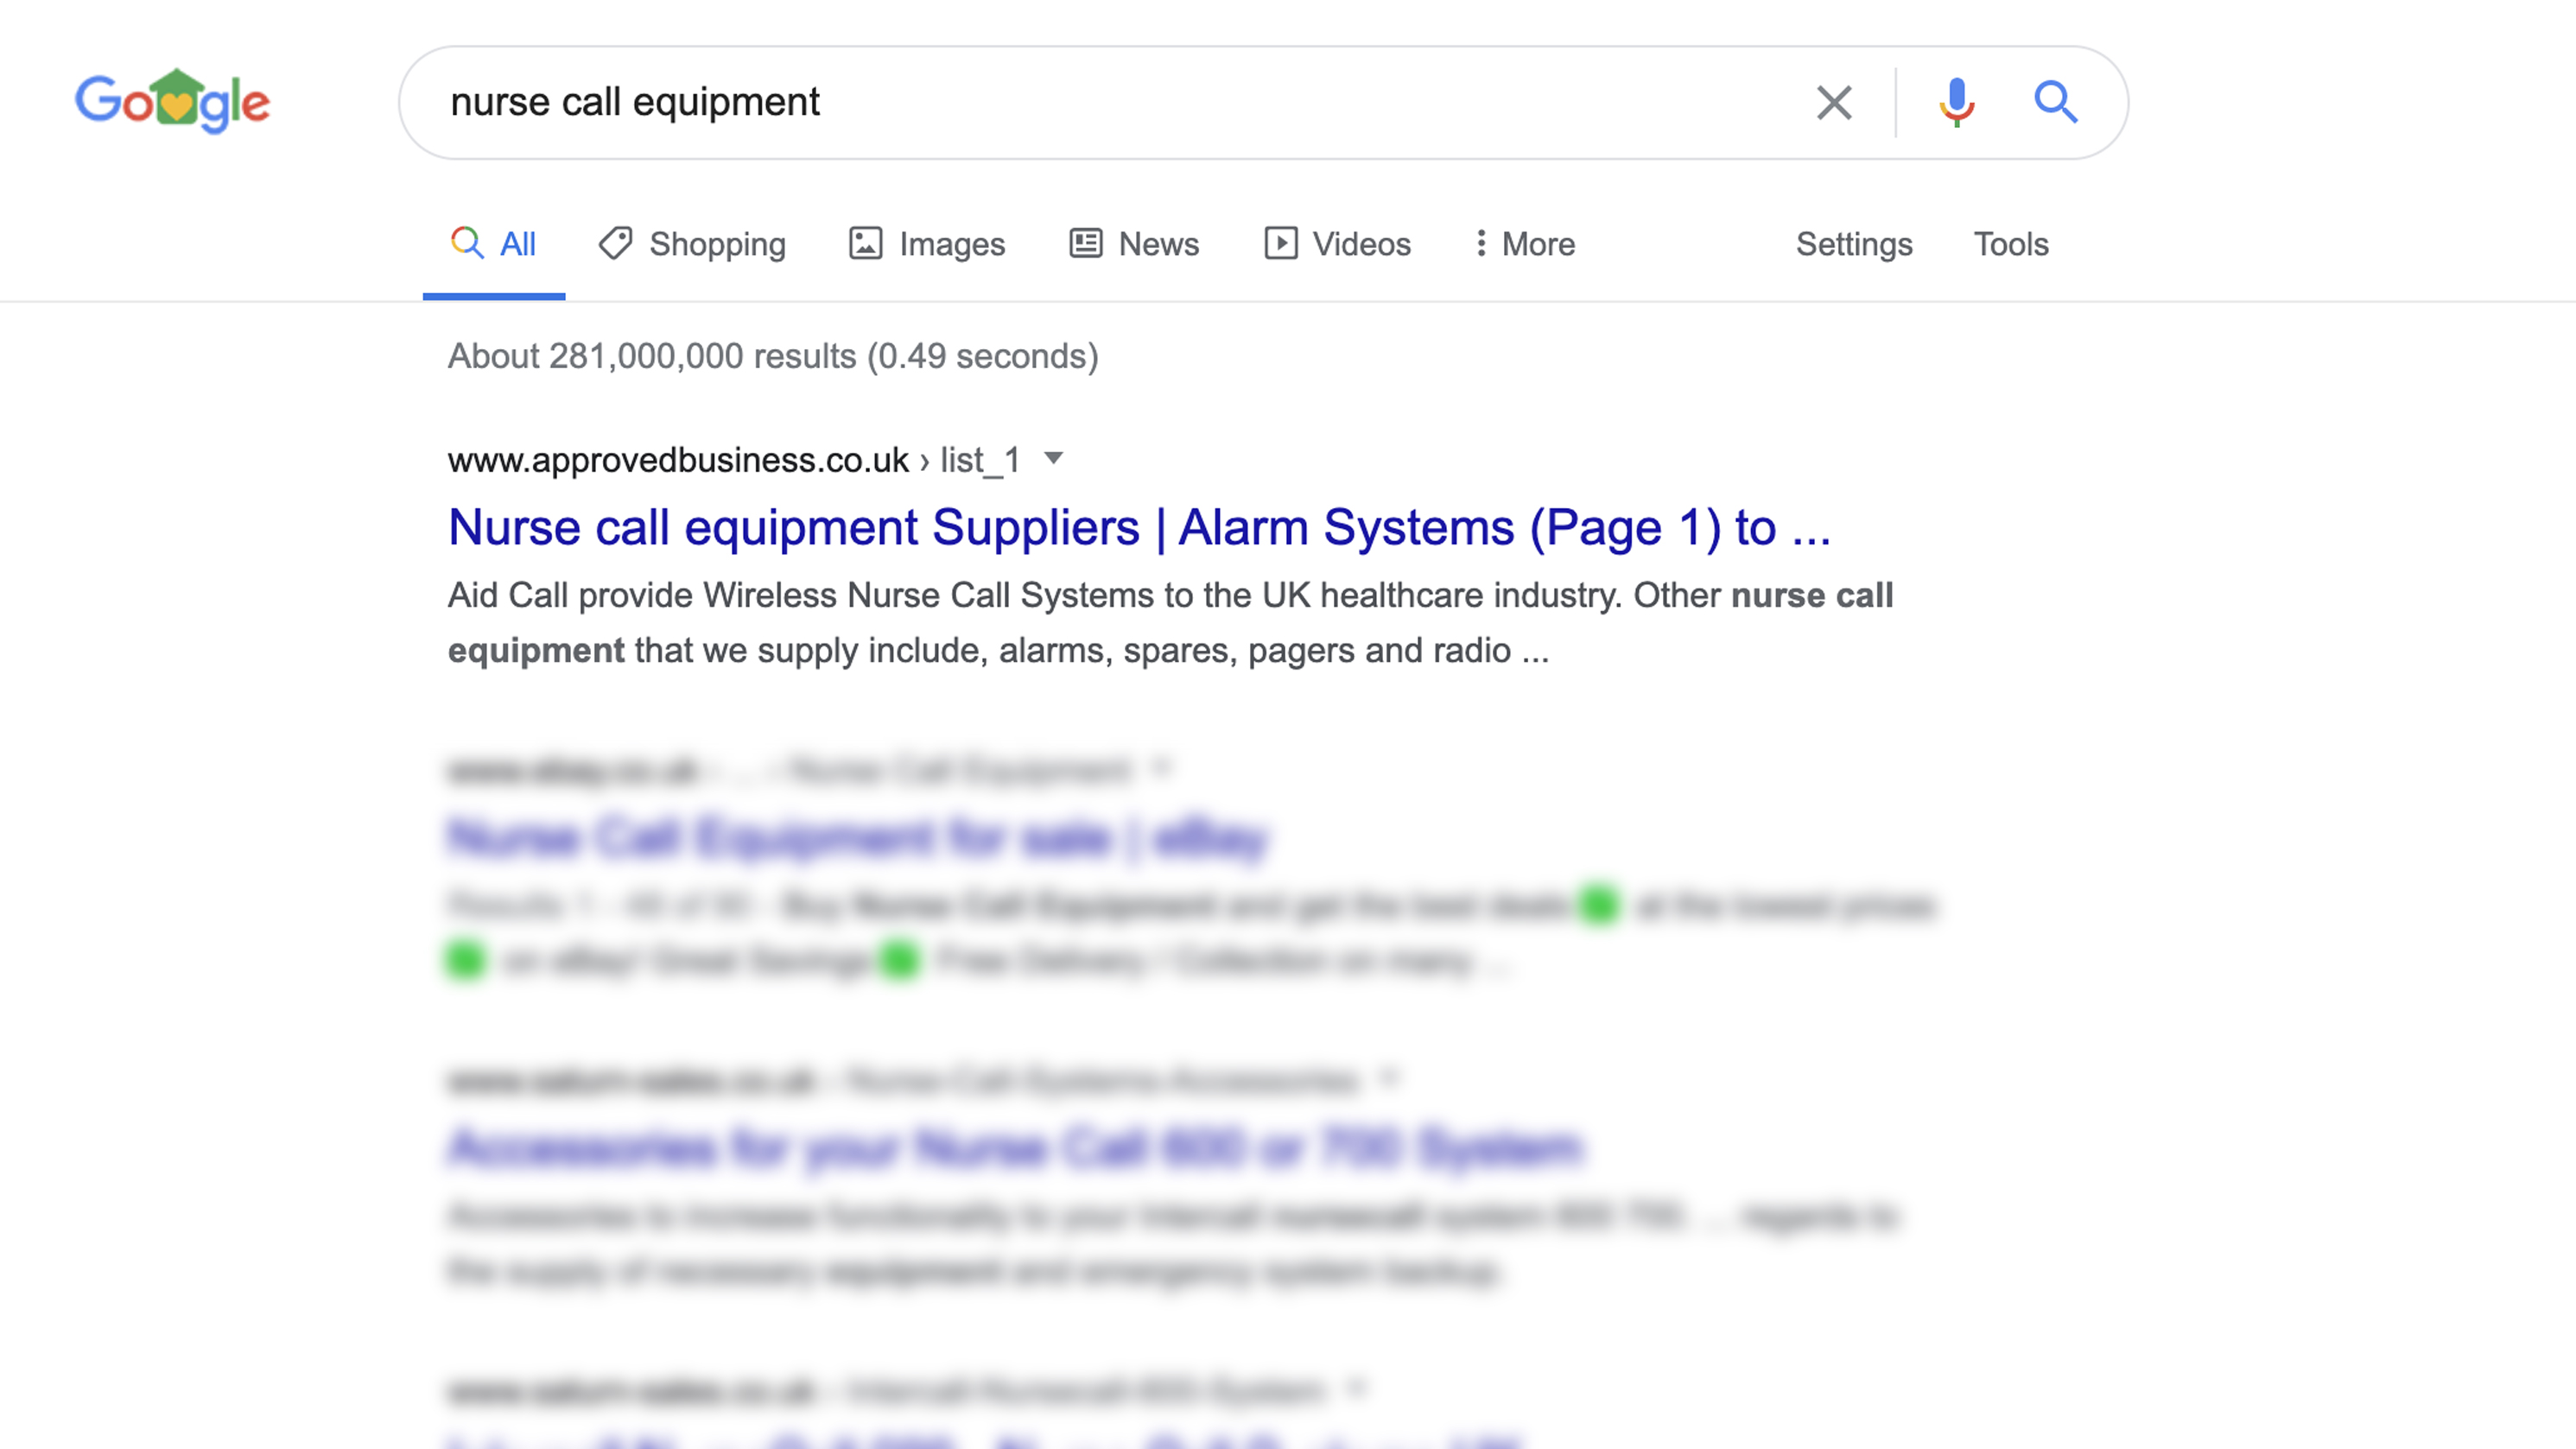 Google screenshot showing nurse call equipment